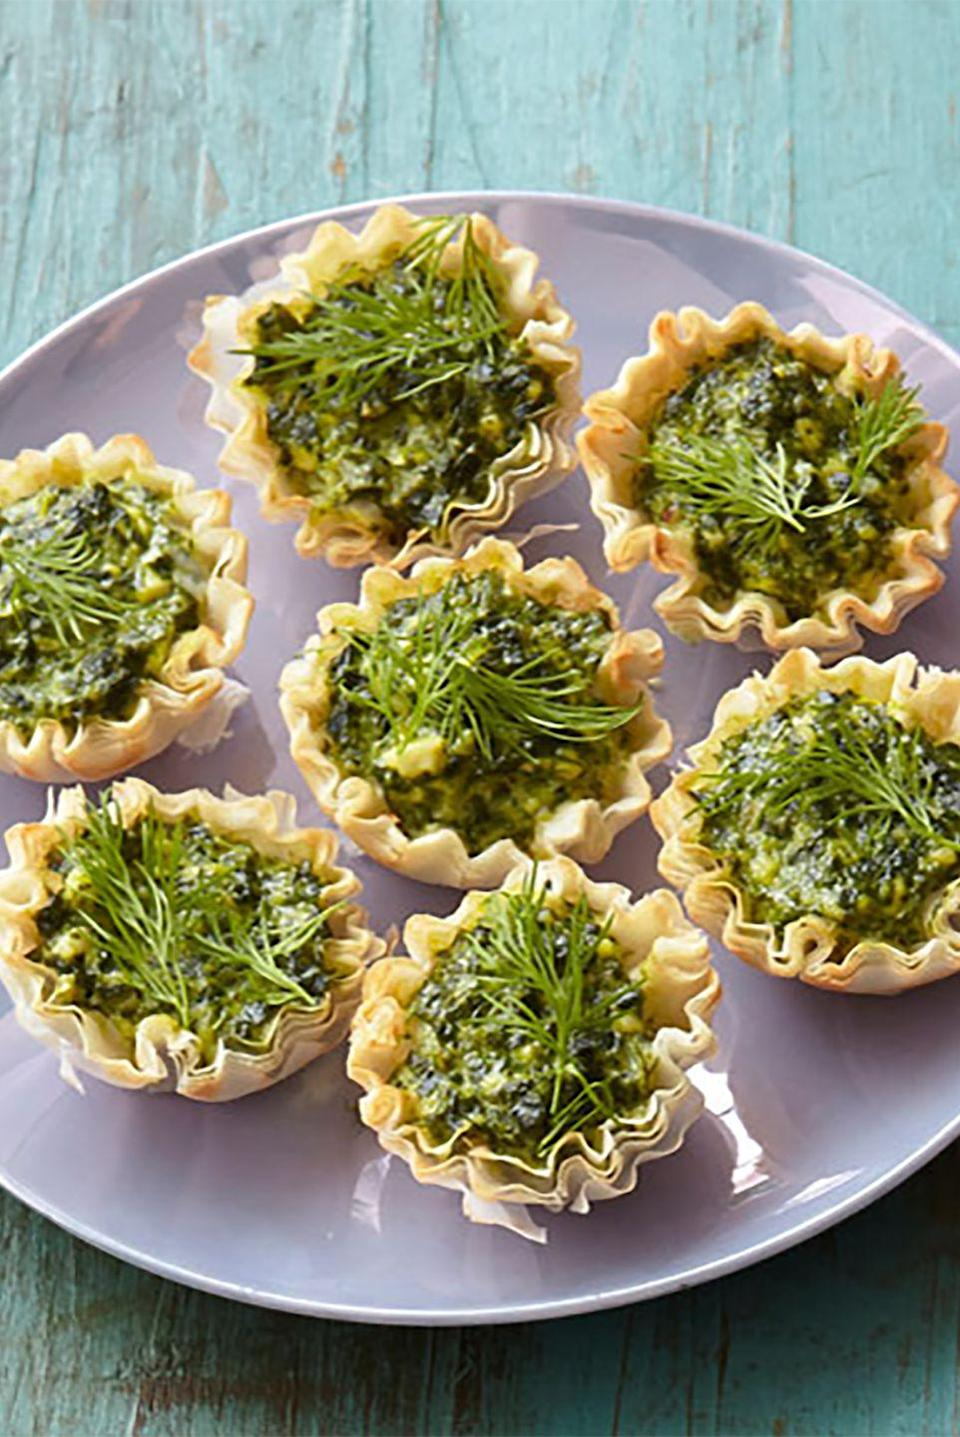 """<p>Reminiscent of Greek spanakopita, these savory tartlets combine spinach, feta cheese, and fresh dill.</p><p><strong><a href=""""https://www.countryliving.com/food-drinks/recipes/a34777/feta-spinach-tartlets-recipe-ghk0414/"""" rel=""""nofollow noopener"""" target=""""_blank"""" data-ylk=""""slk:Get the recipe"""" class=""""link rapid-noclick-resp"""">Get the recipe</a>.</strong></p>"""